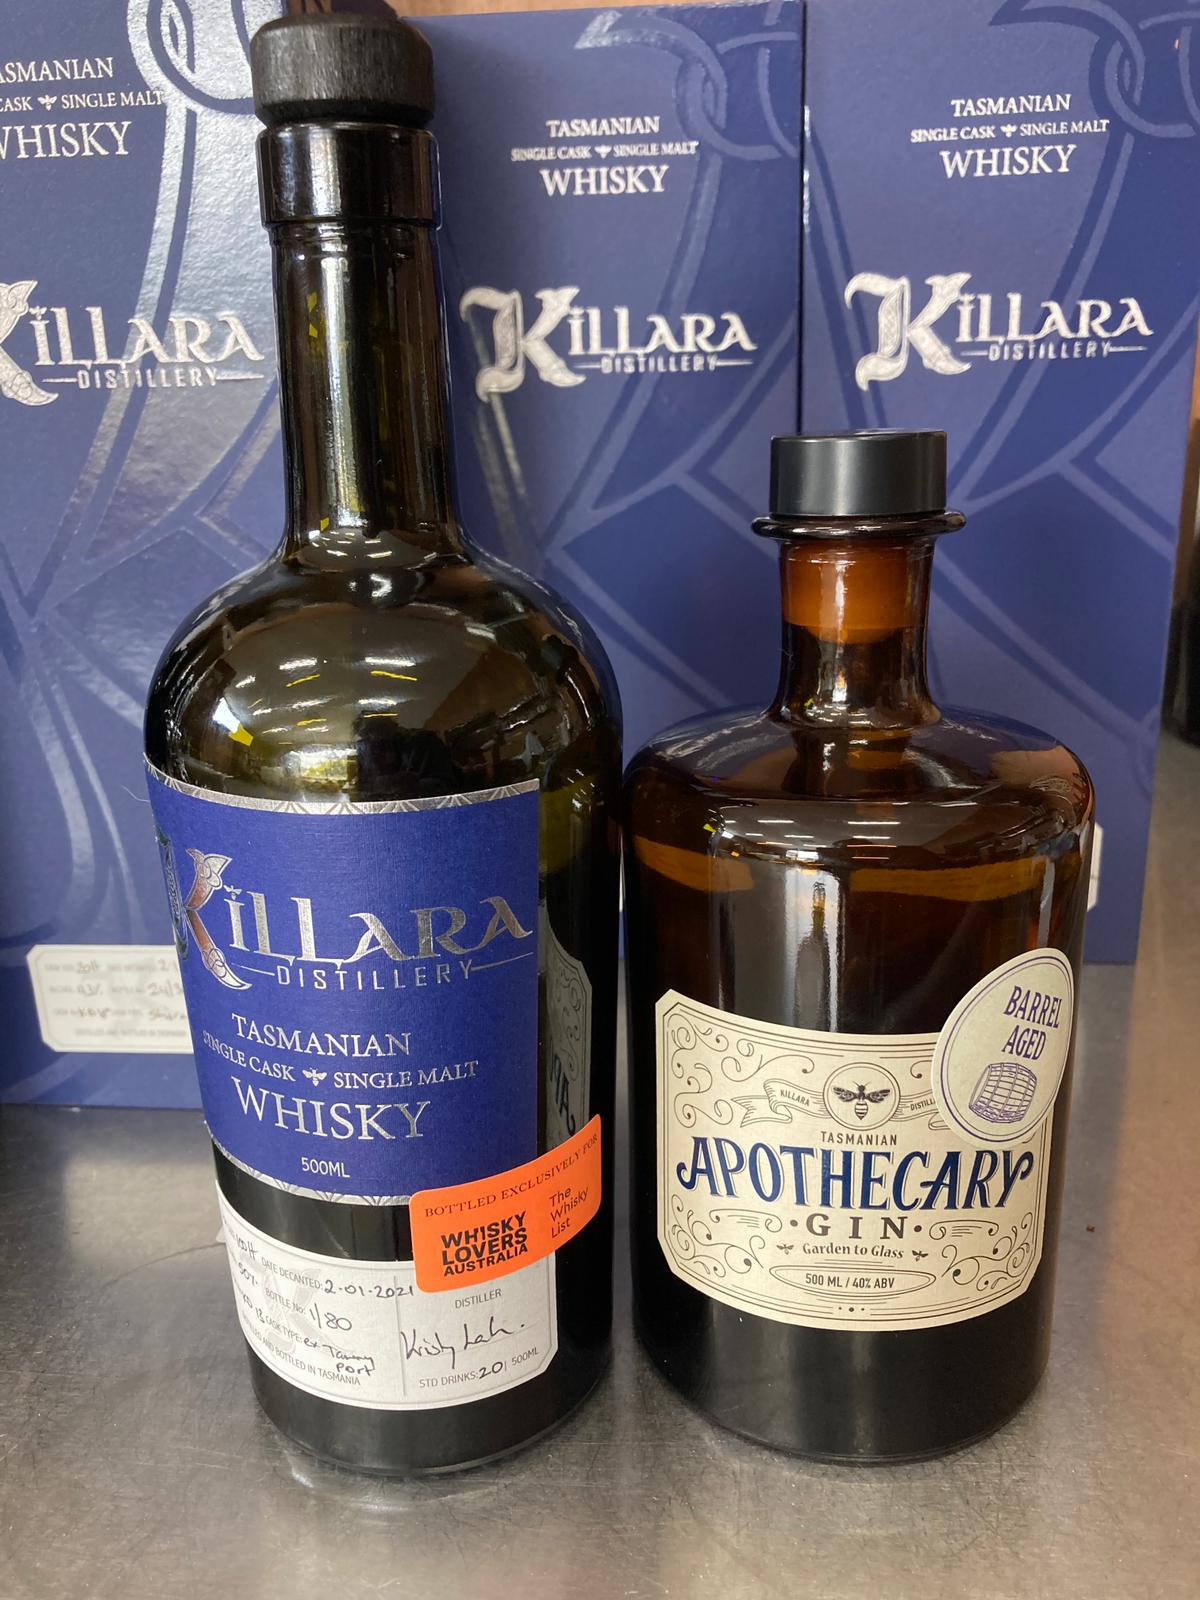 Killara Barrel Aged Gin For The Whisky List (500ml)